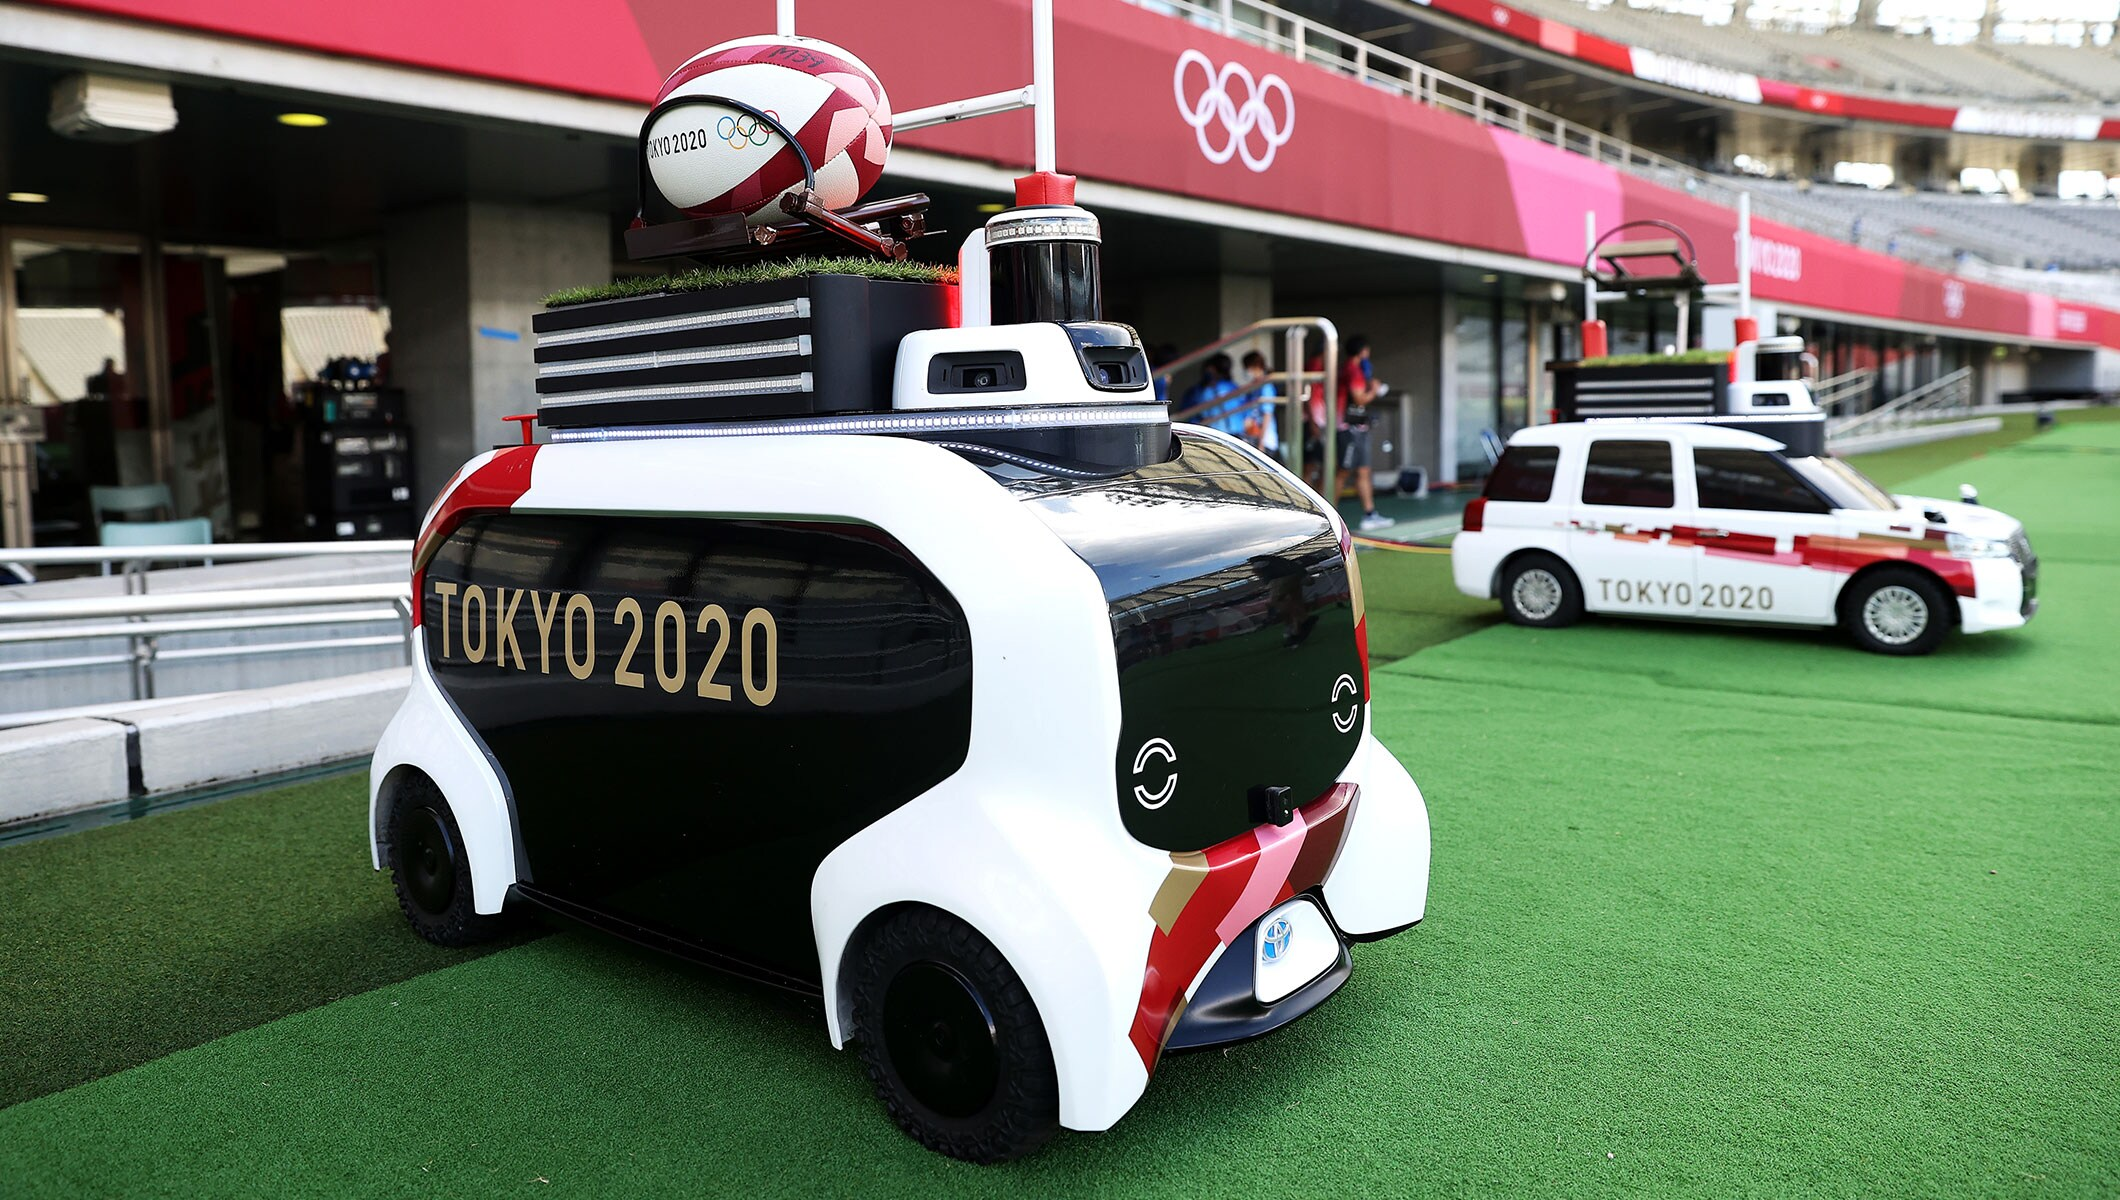 Autonomous robot delivers rugby ball to rugby sevens players at Tokyo 2020